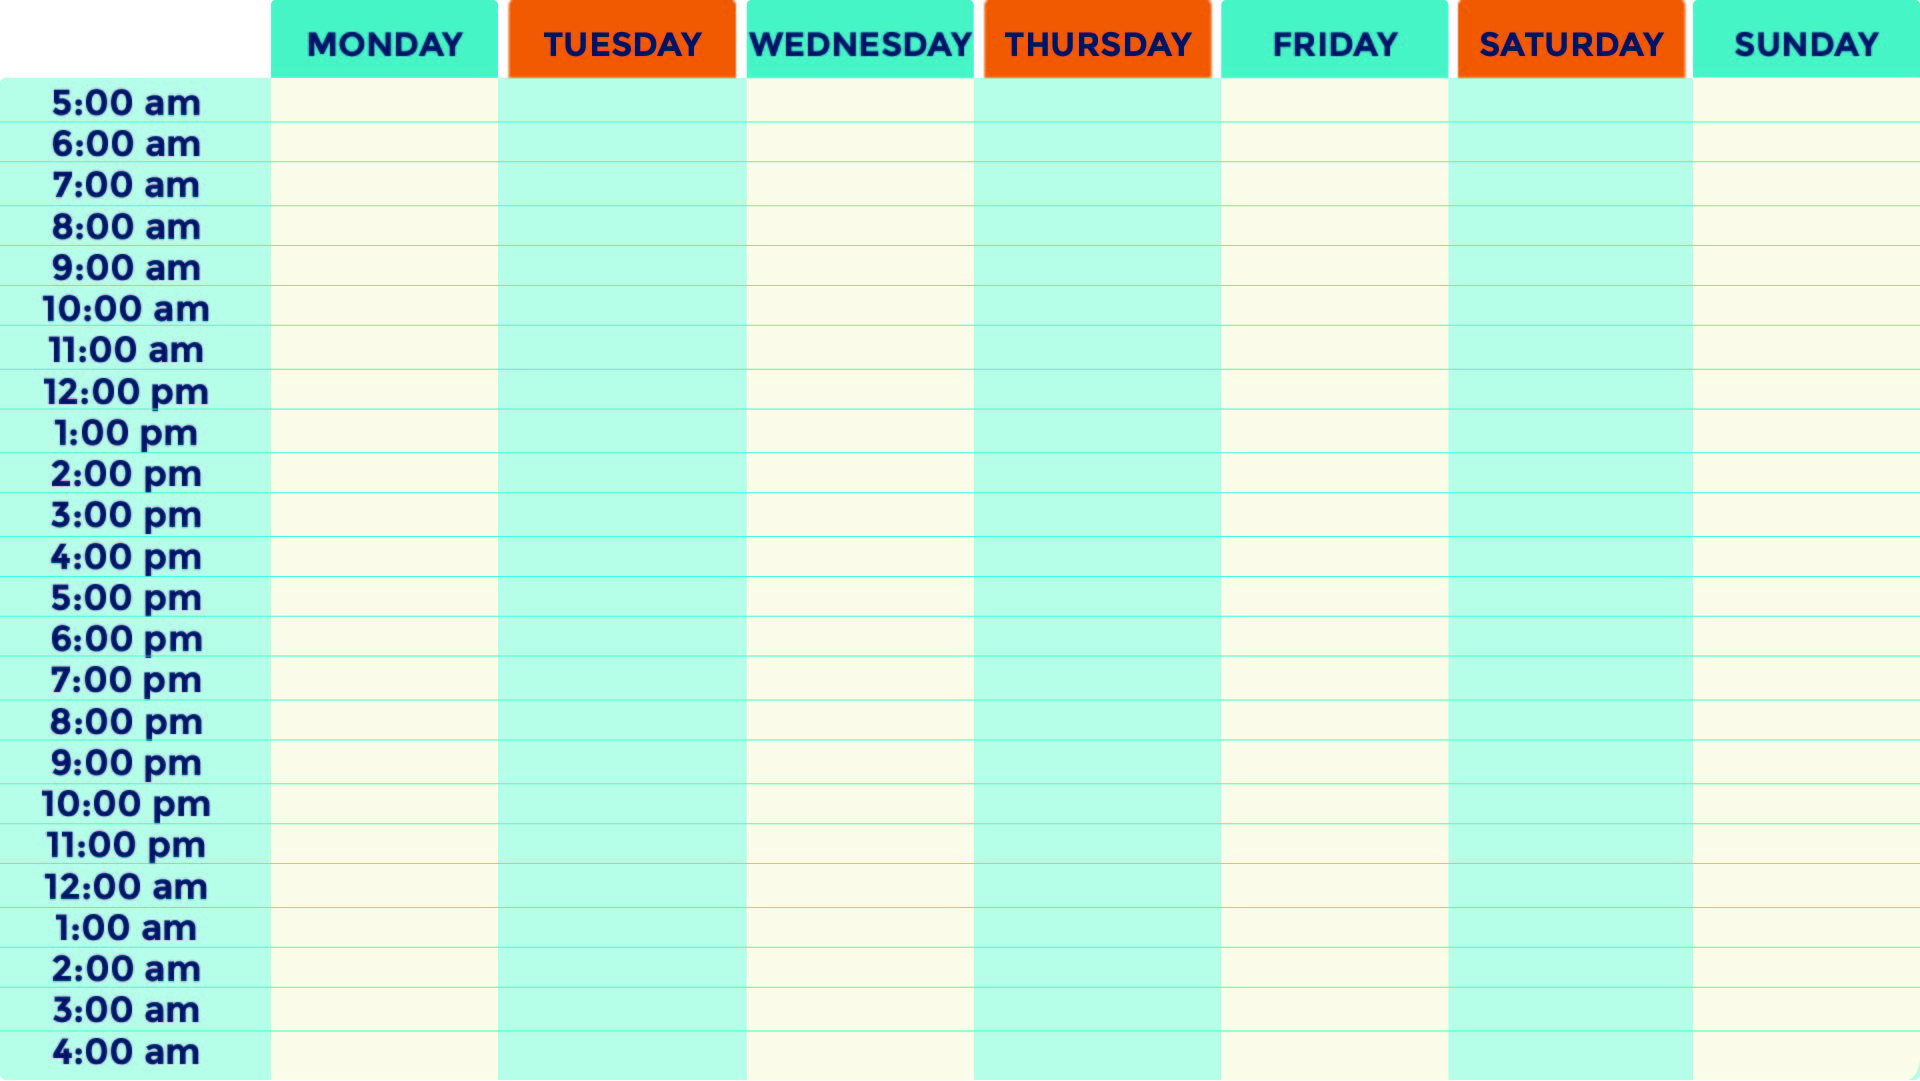 Printable Weekly Calendar with Time Slots